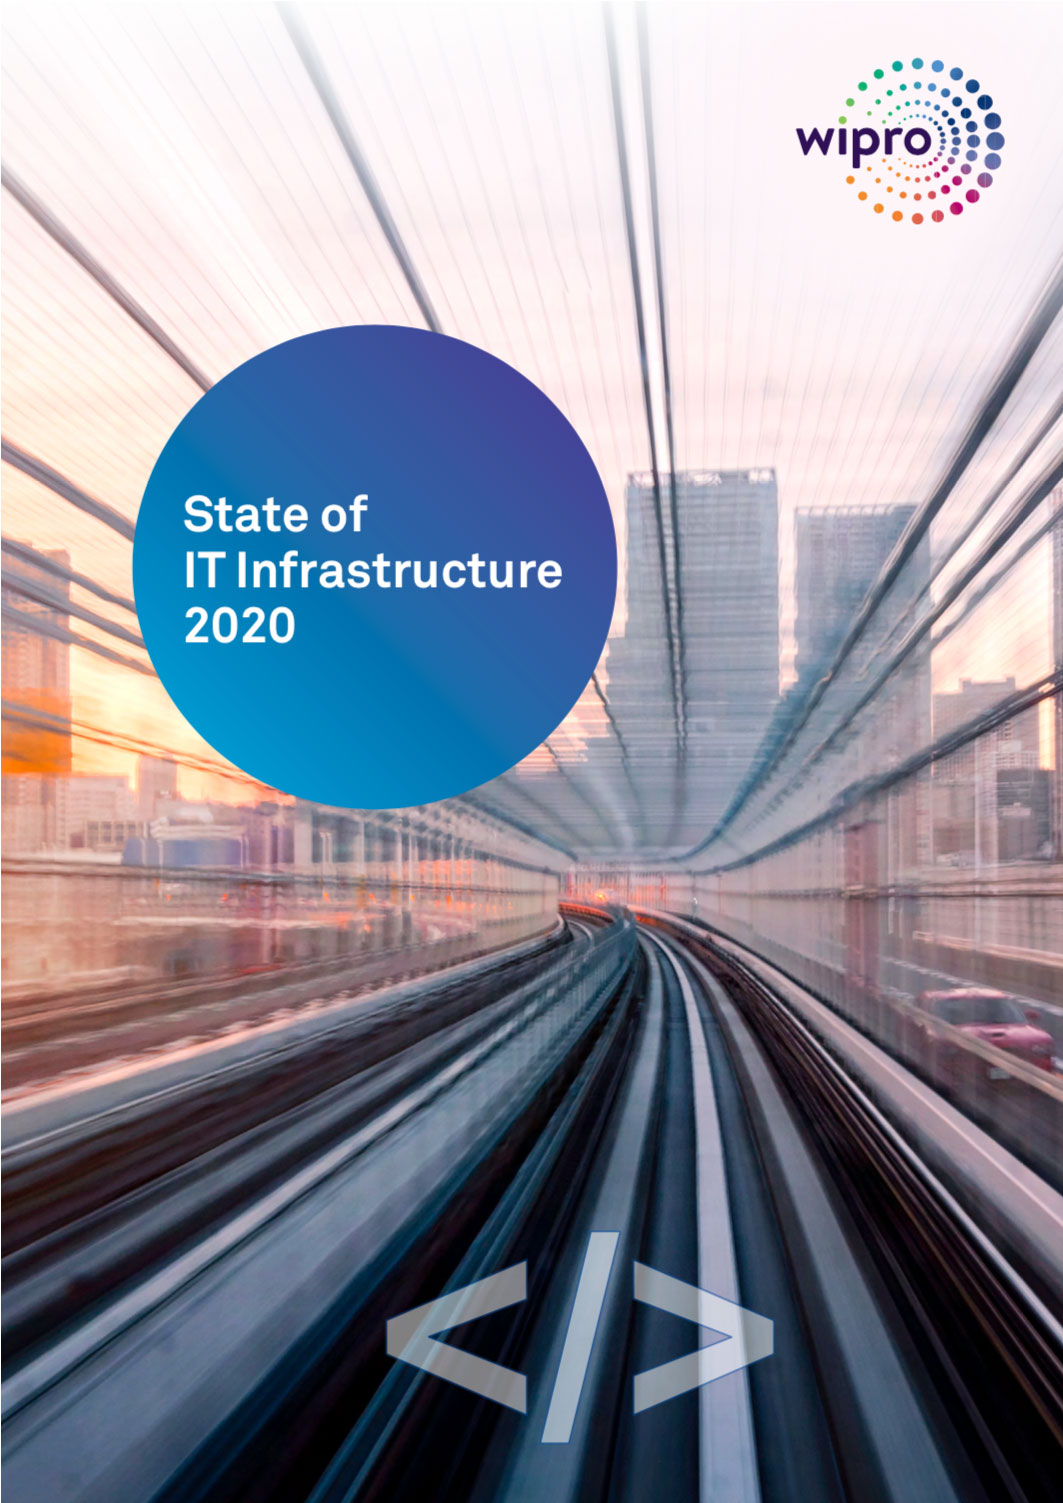 Invest in the right infrastructure to drive retail transformation and innovation